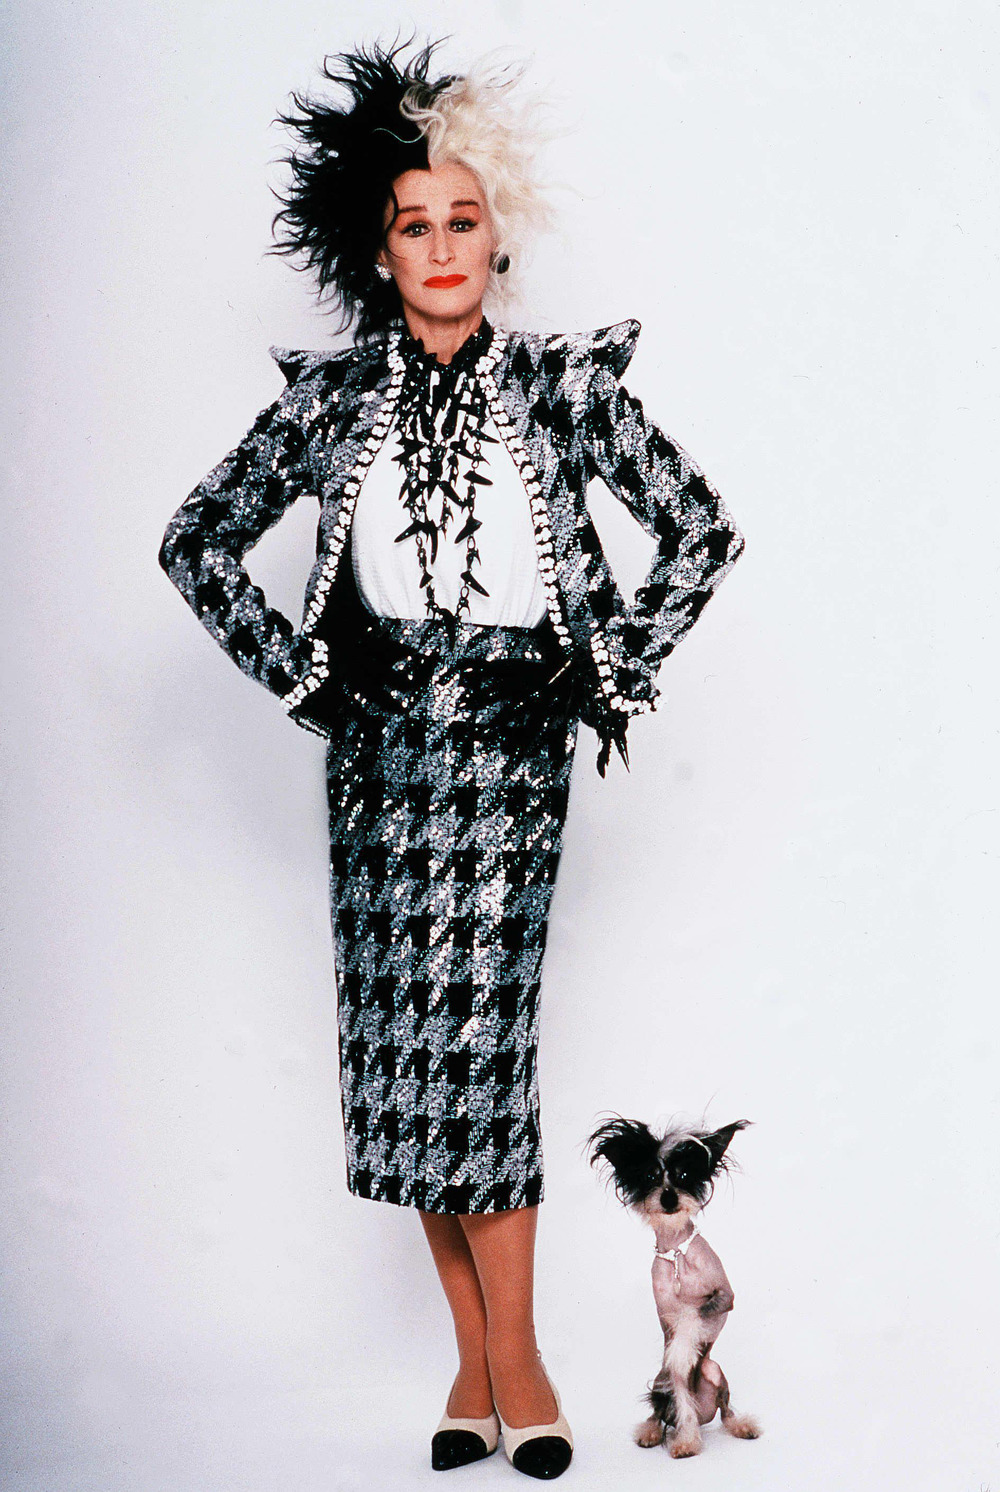 101-Dalmatians-glenn-close-32368191-1890-2820.jpg